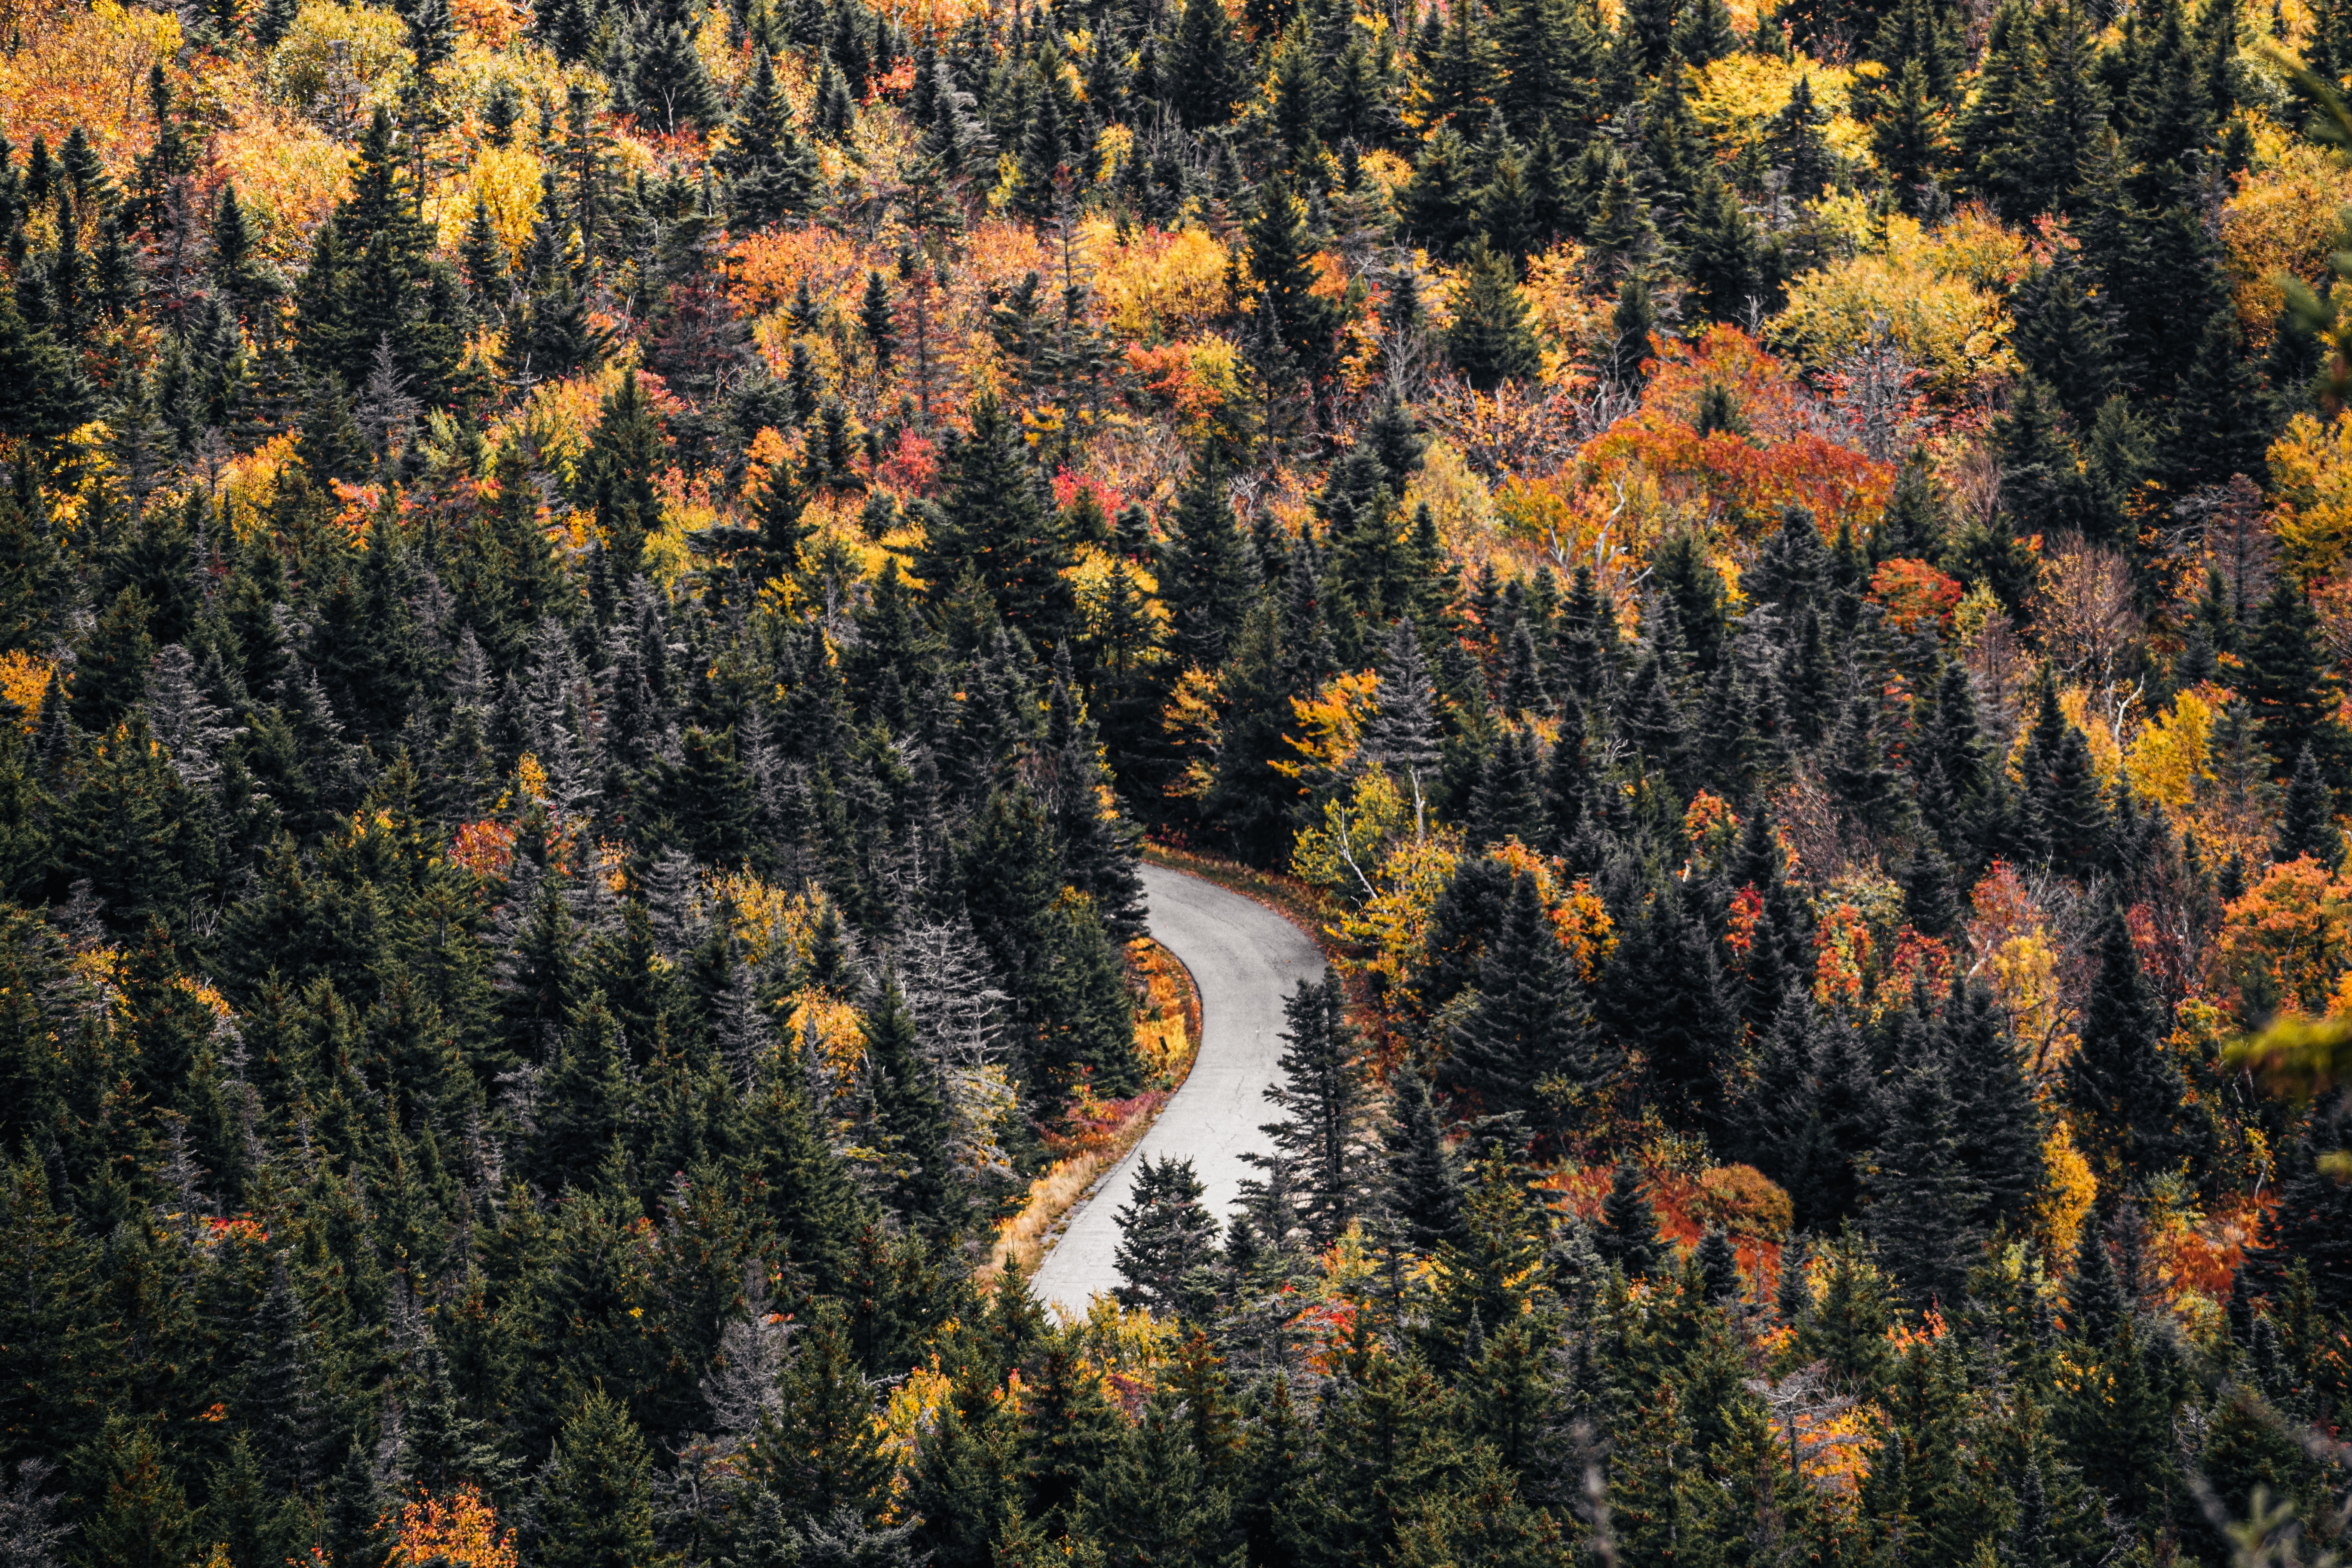 141351 download wallpaper Nature, Road, Forest, Trees, Autumn screensavers and pictures for free